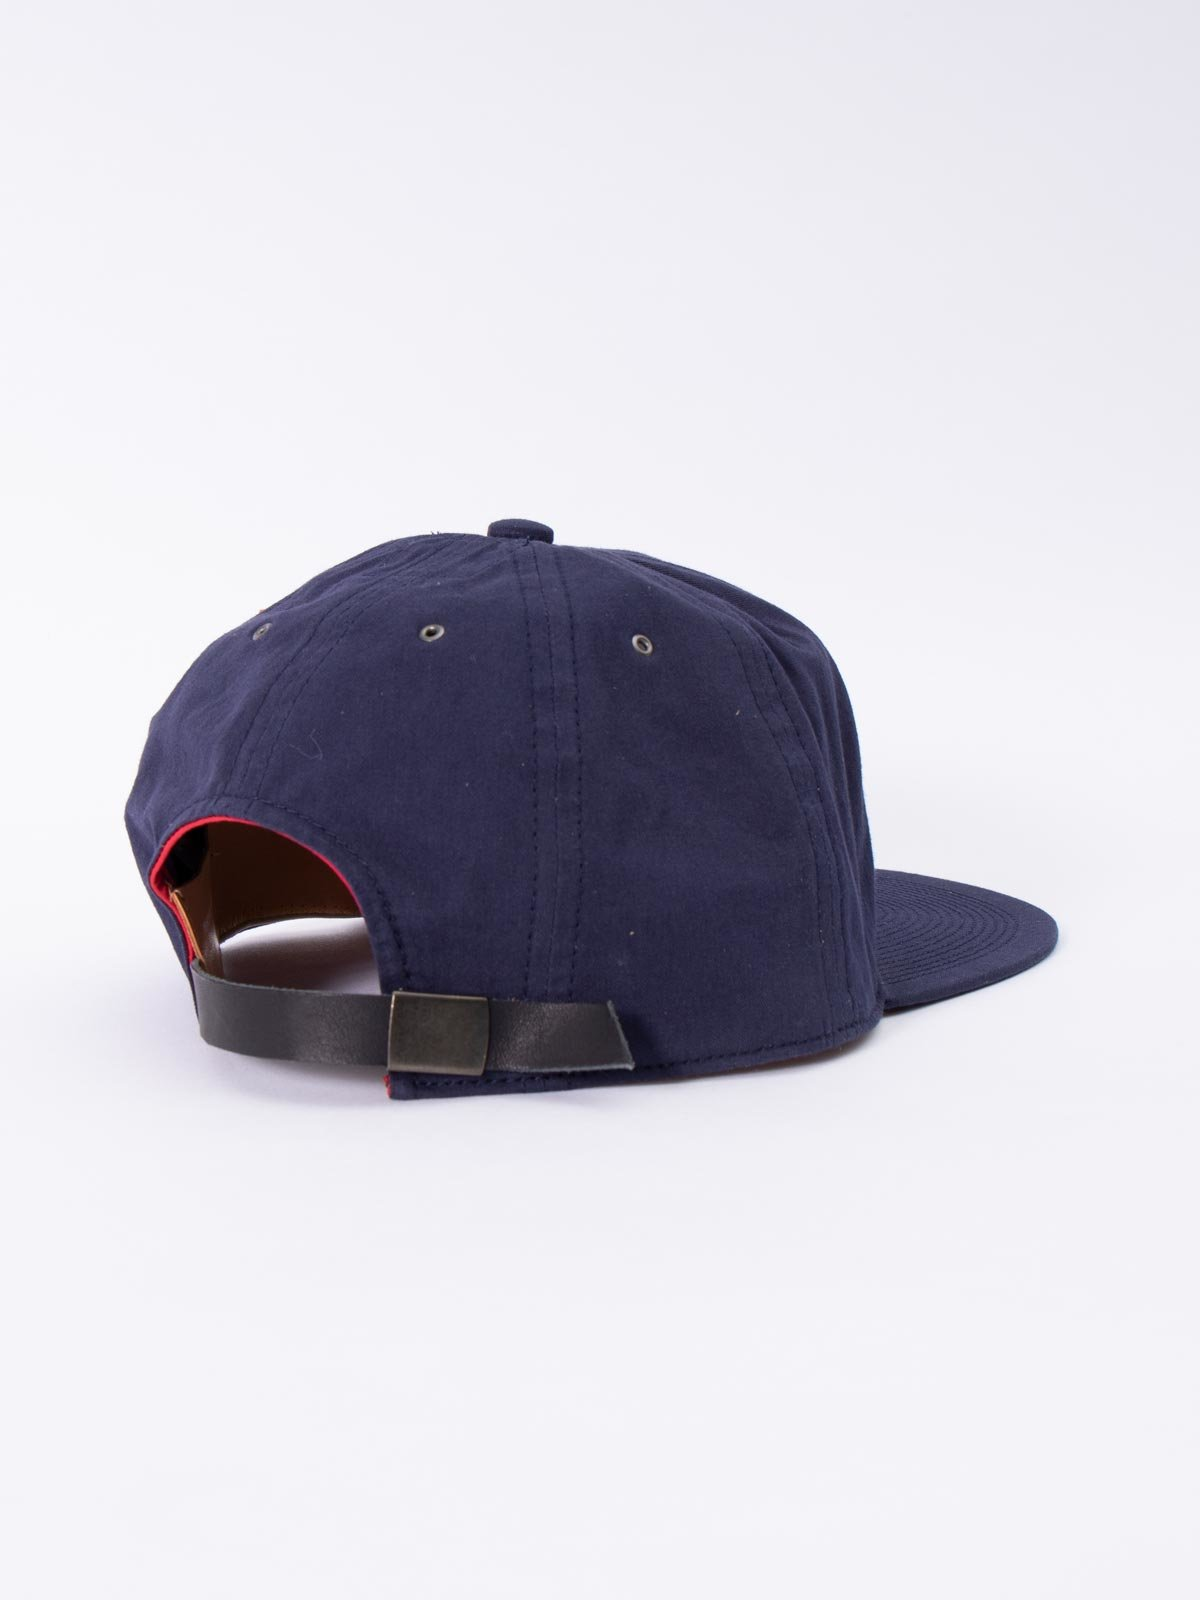 NAVY WASHED COTTON CAP - Image 2